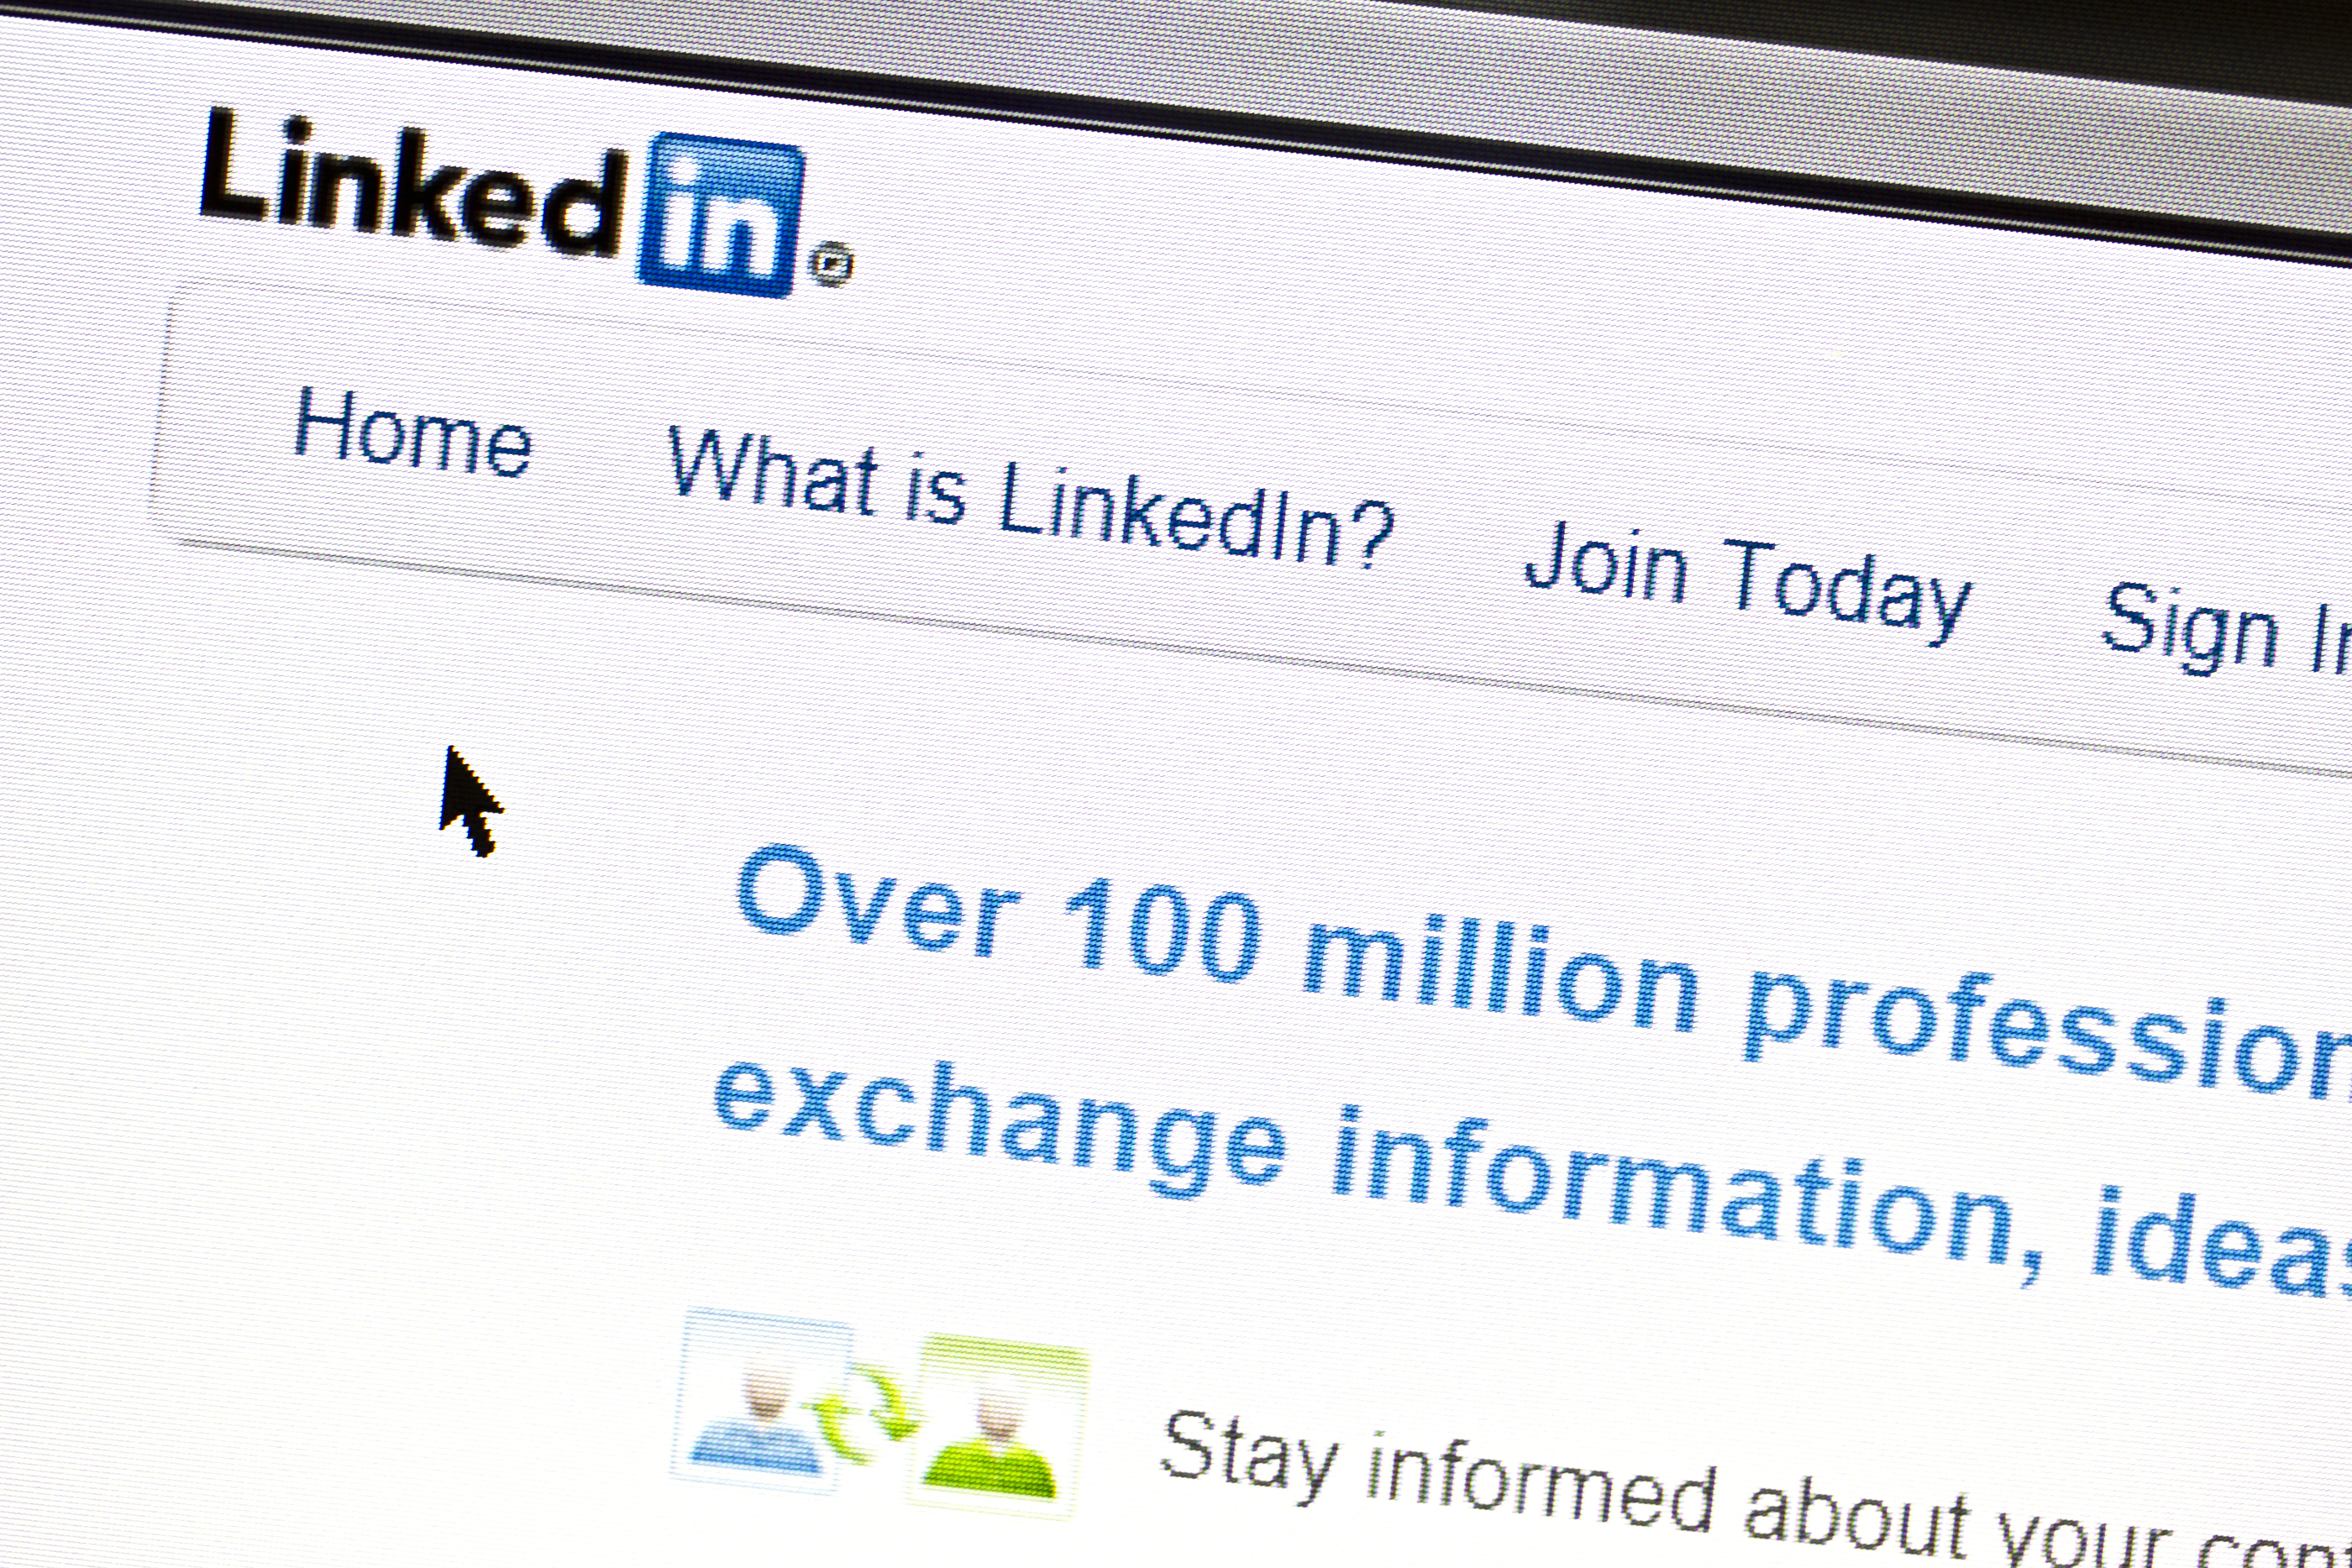 Powering Your Potential Through LinkedIn - Affordable Professional ...